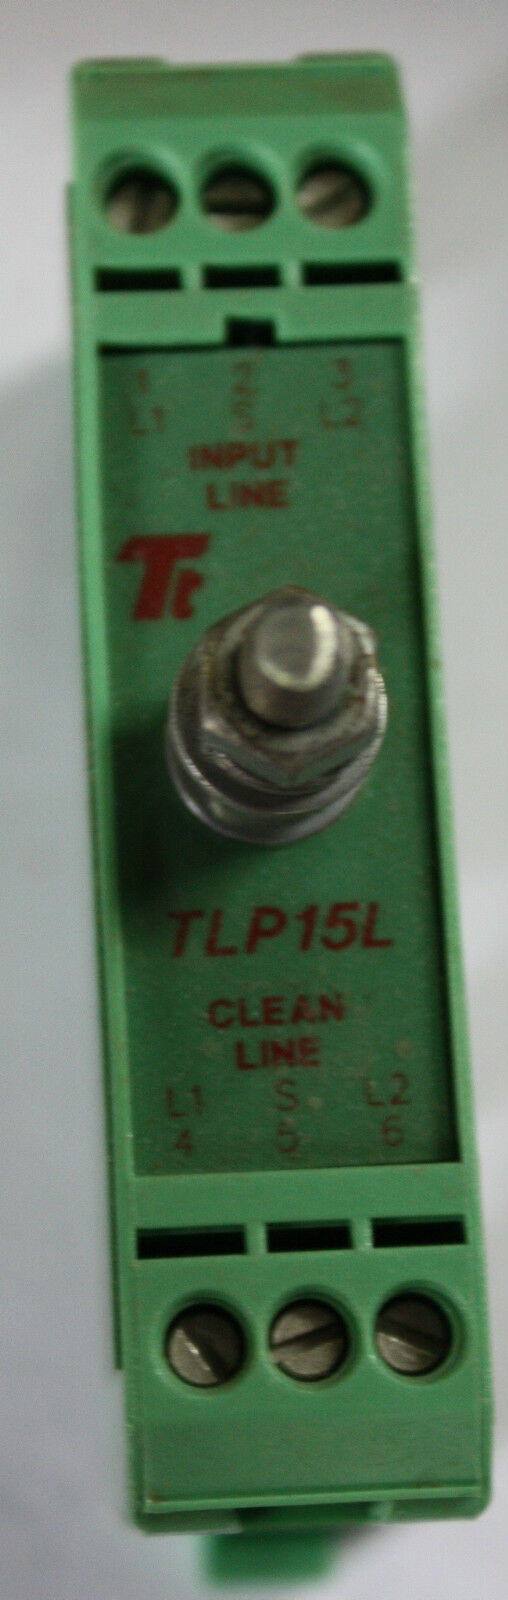 Transtech TLP15L Clean Line TLP lightning barrier